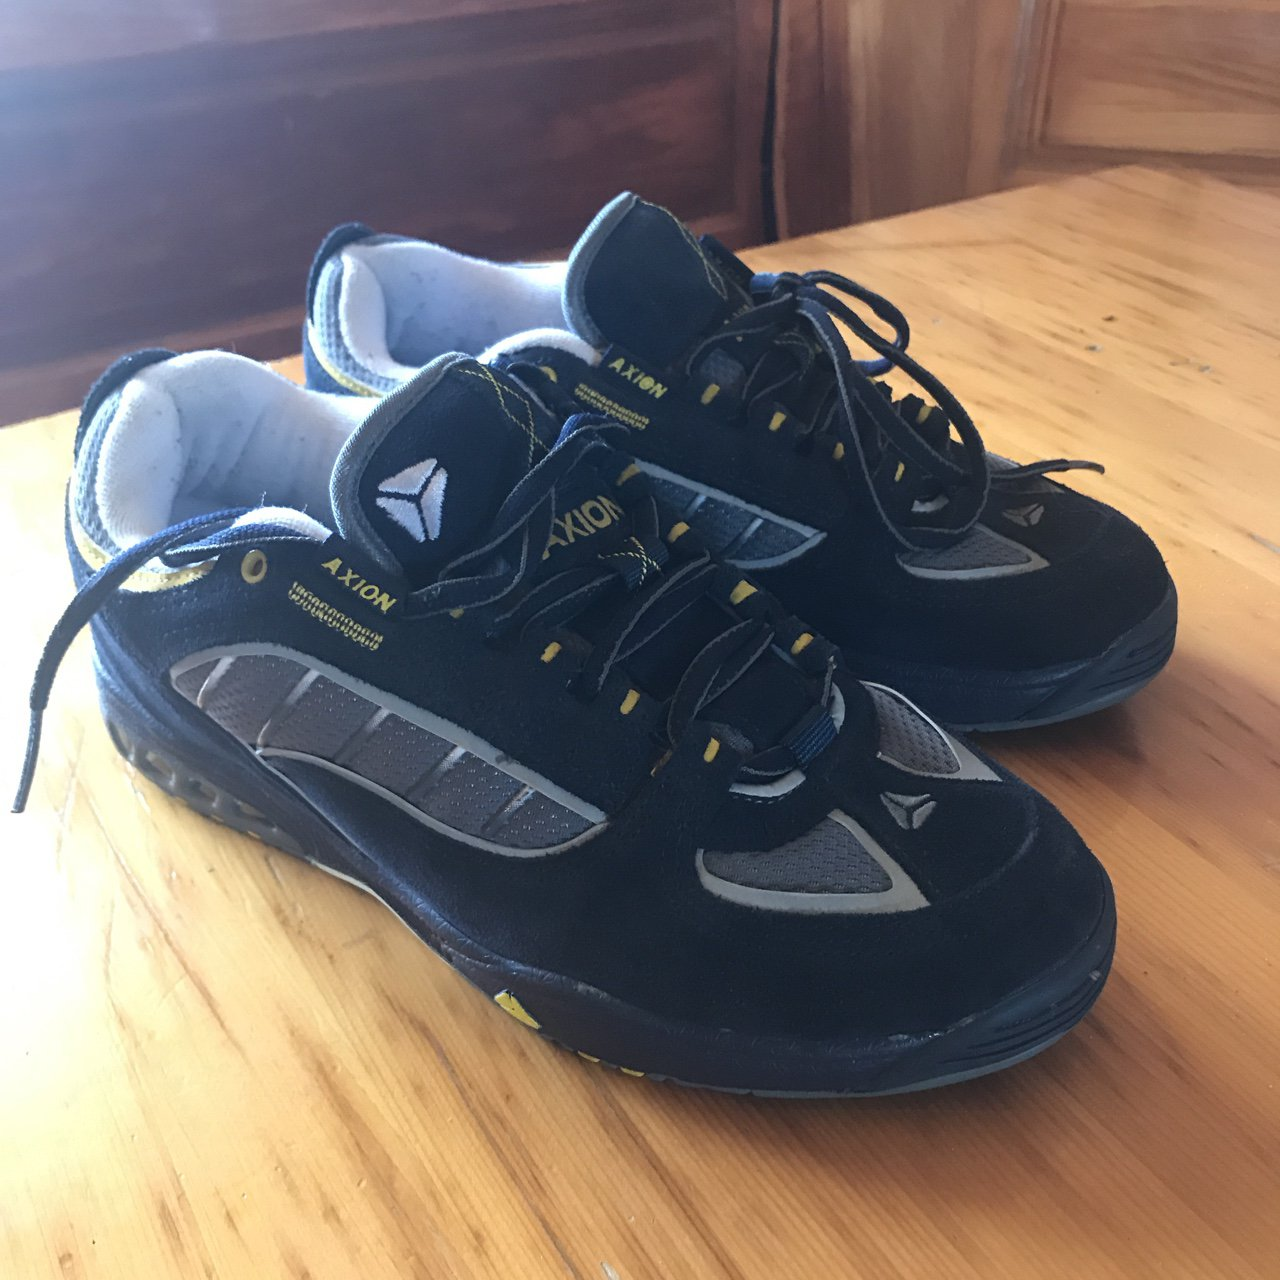 Axion Kc2000 Kck Kareem Campbell Model Size 95 Condition Depop